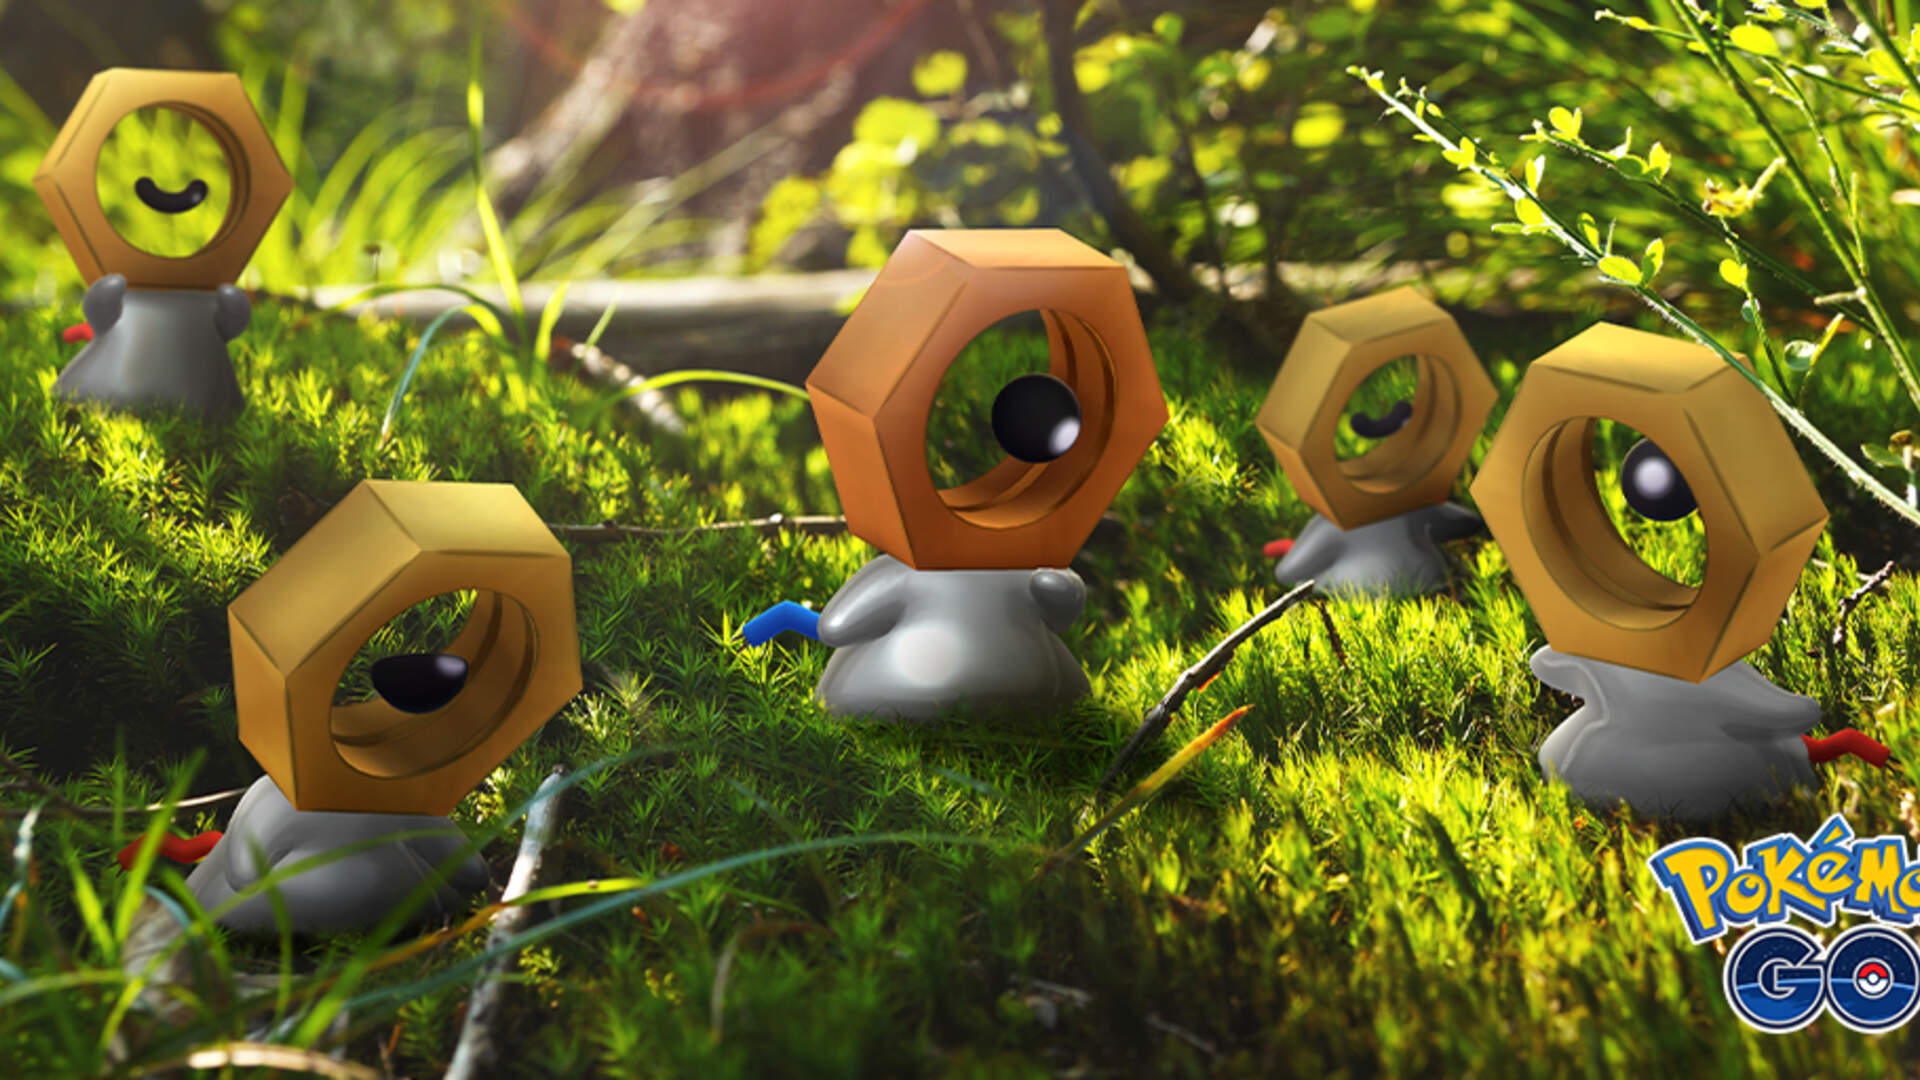 Shiny Meltan Now Available In Pokemon Go For a Limited Time: How to Get One